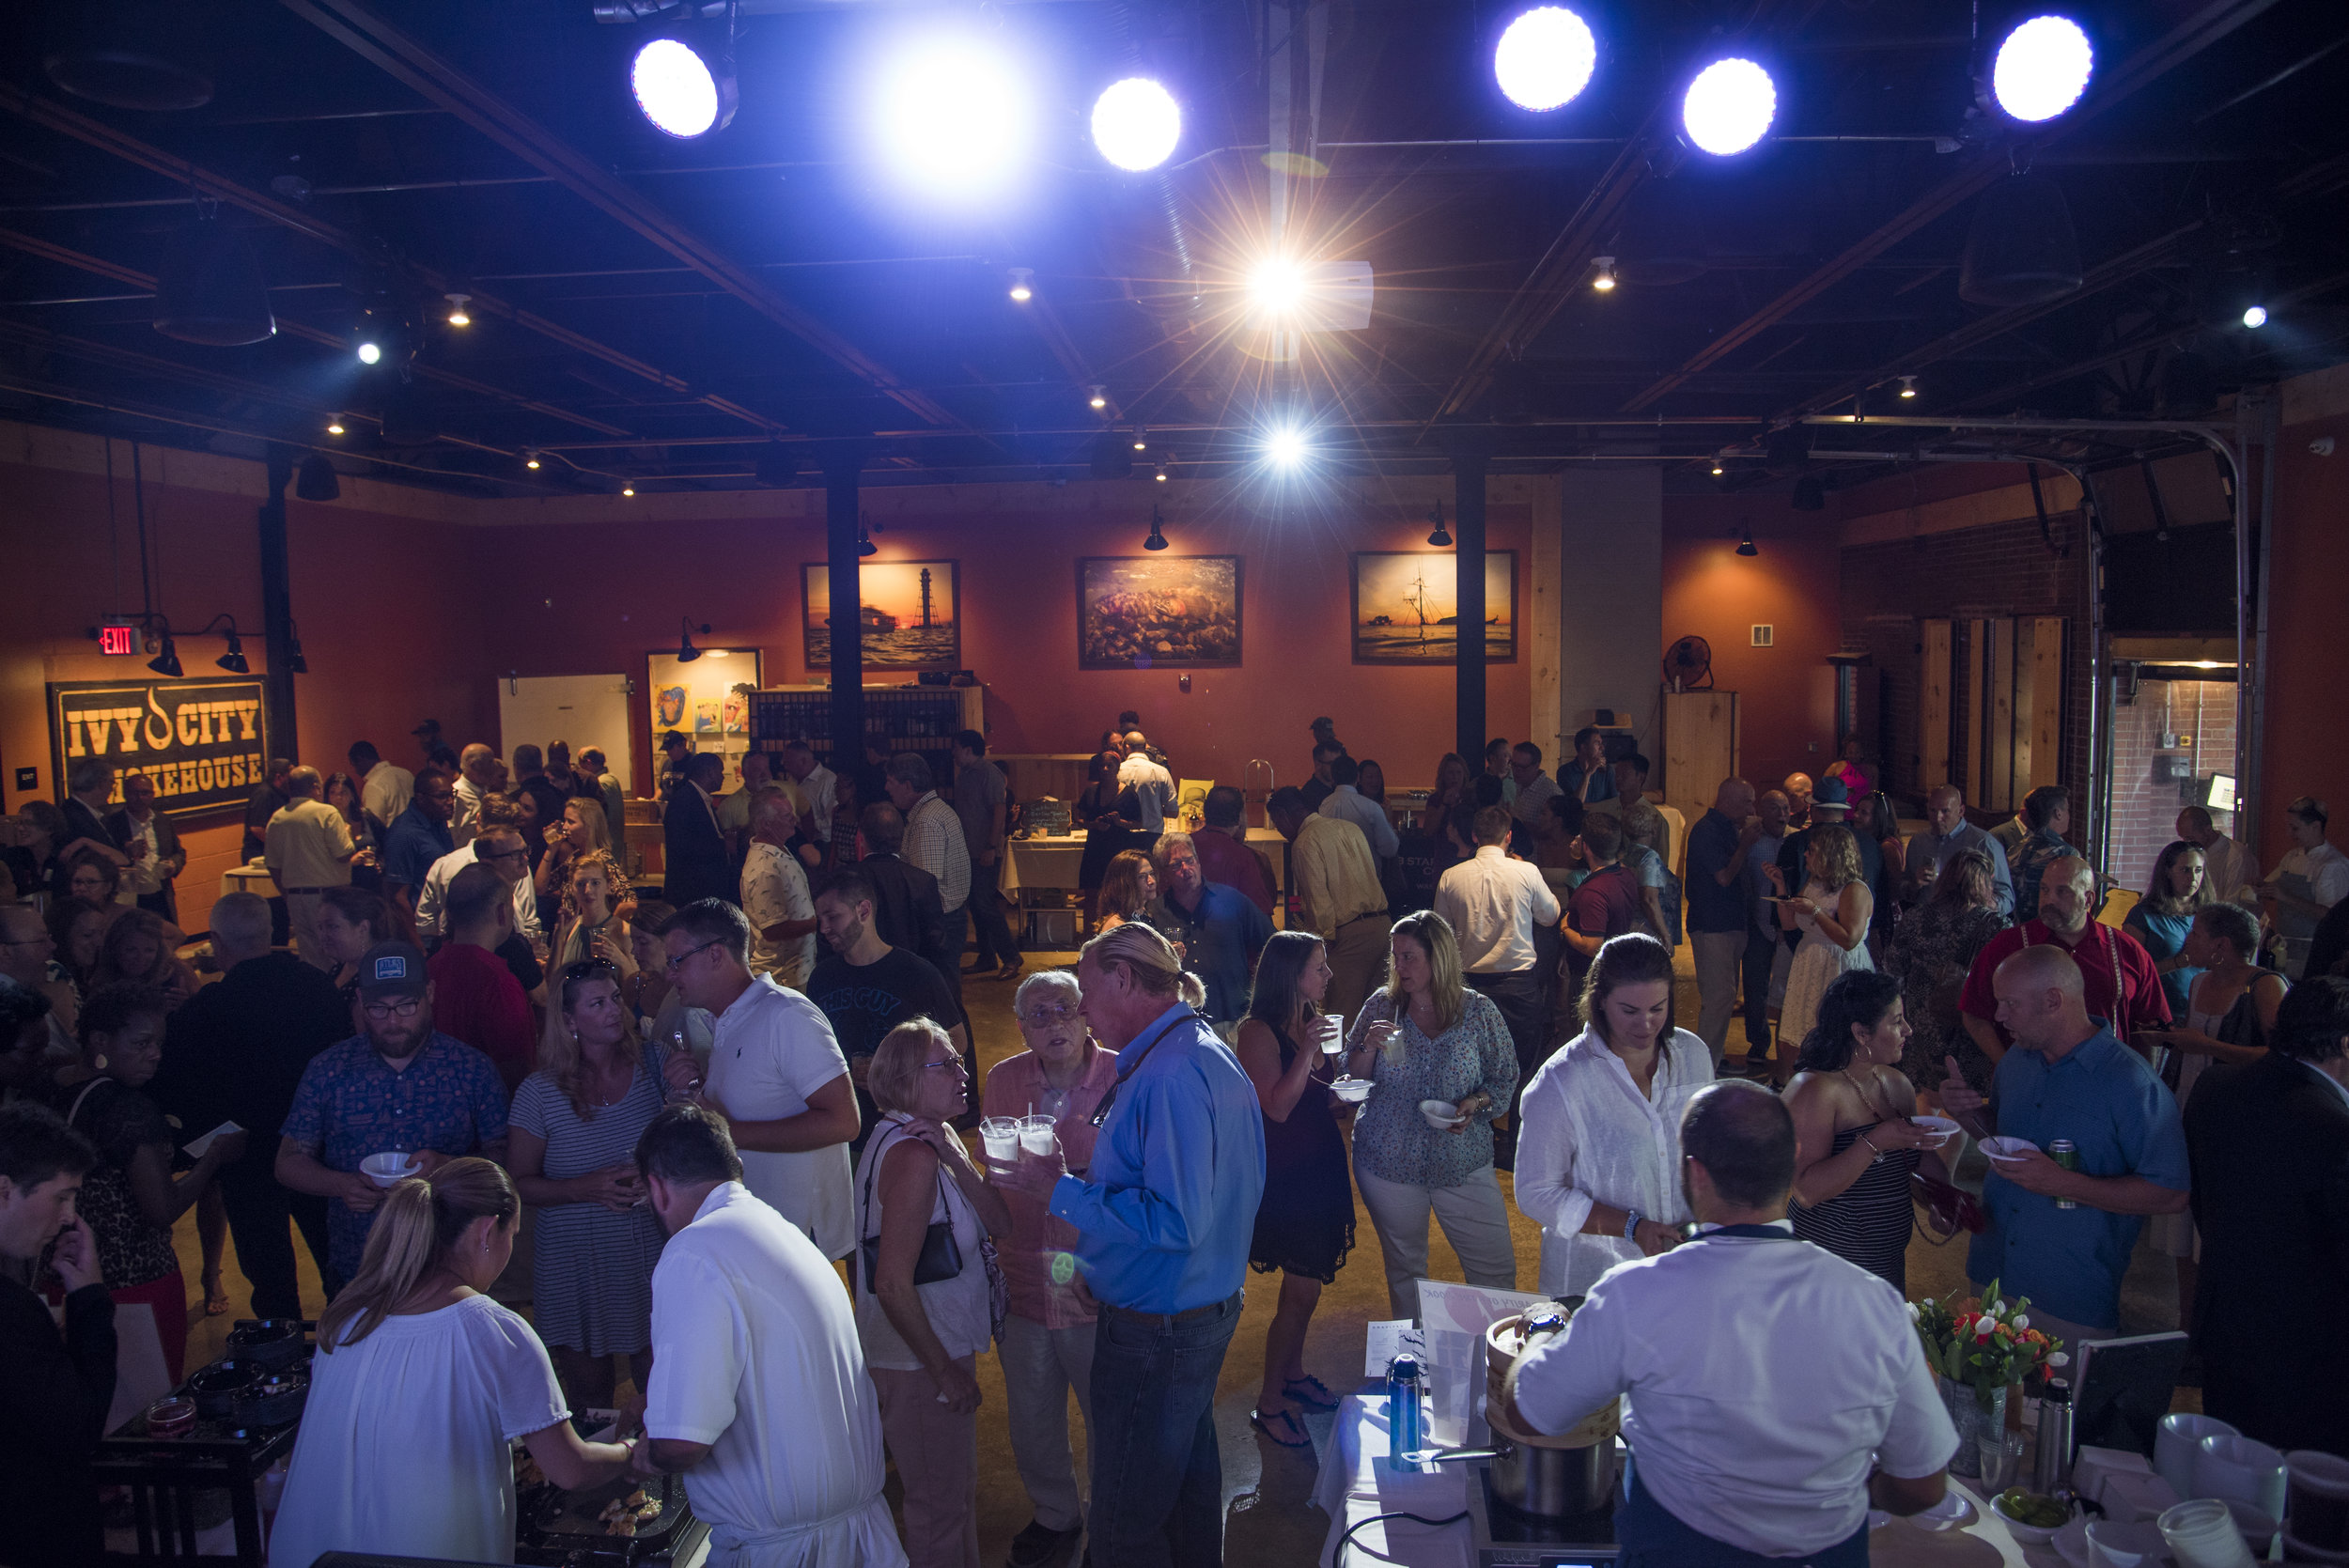 Our Audience - Our event has built a loyal following through the years with a mix of food lovers, industry professionals, restaurateurs, business owners, and philanthropic champions. The event circulates 600+ people each year that share in the value of giving back to their community and local non-profits. 100% of net proceeds support the 6 local charities each year.